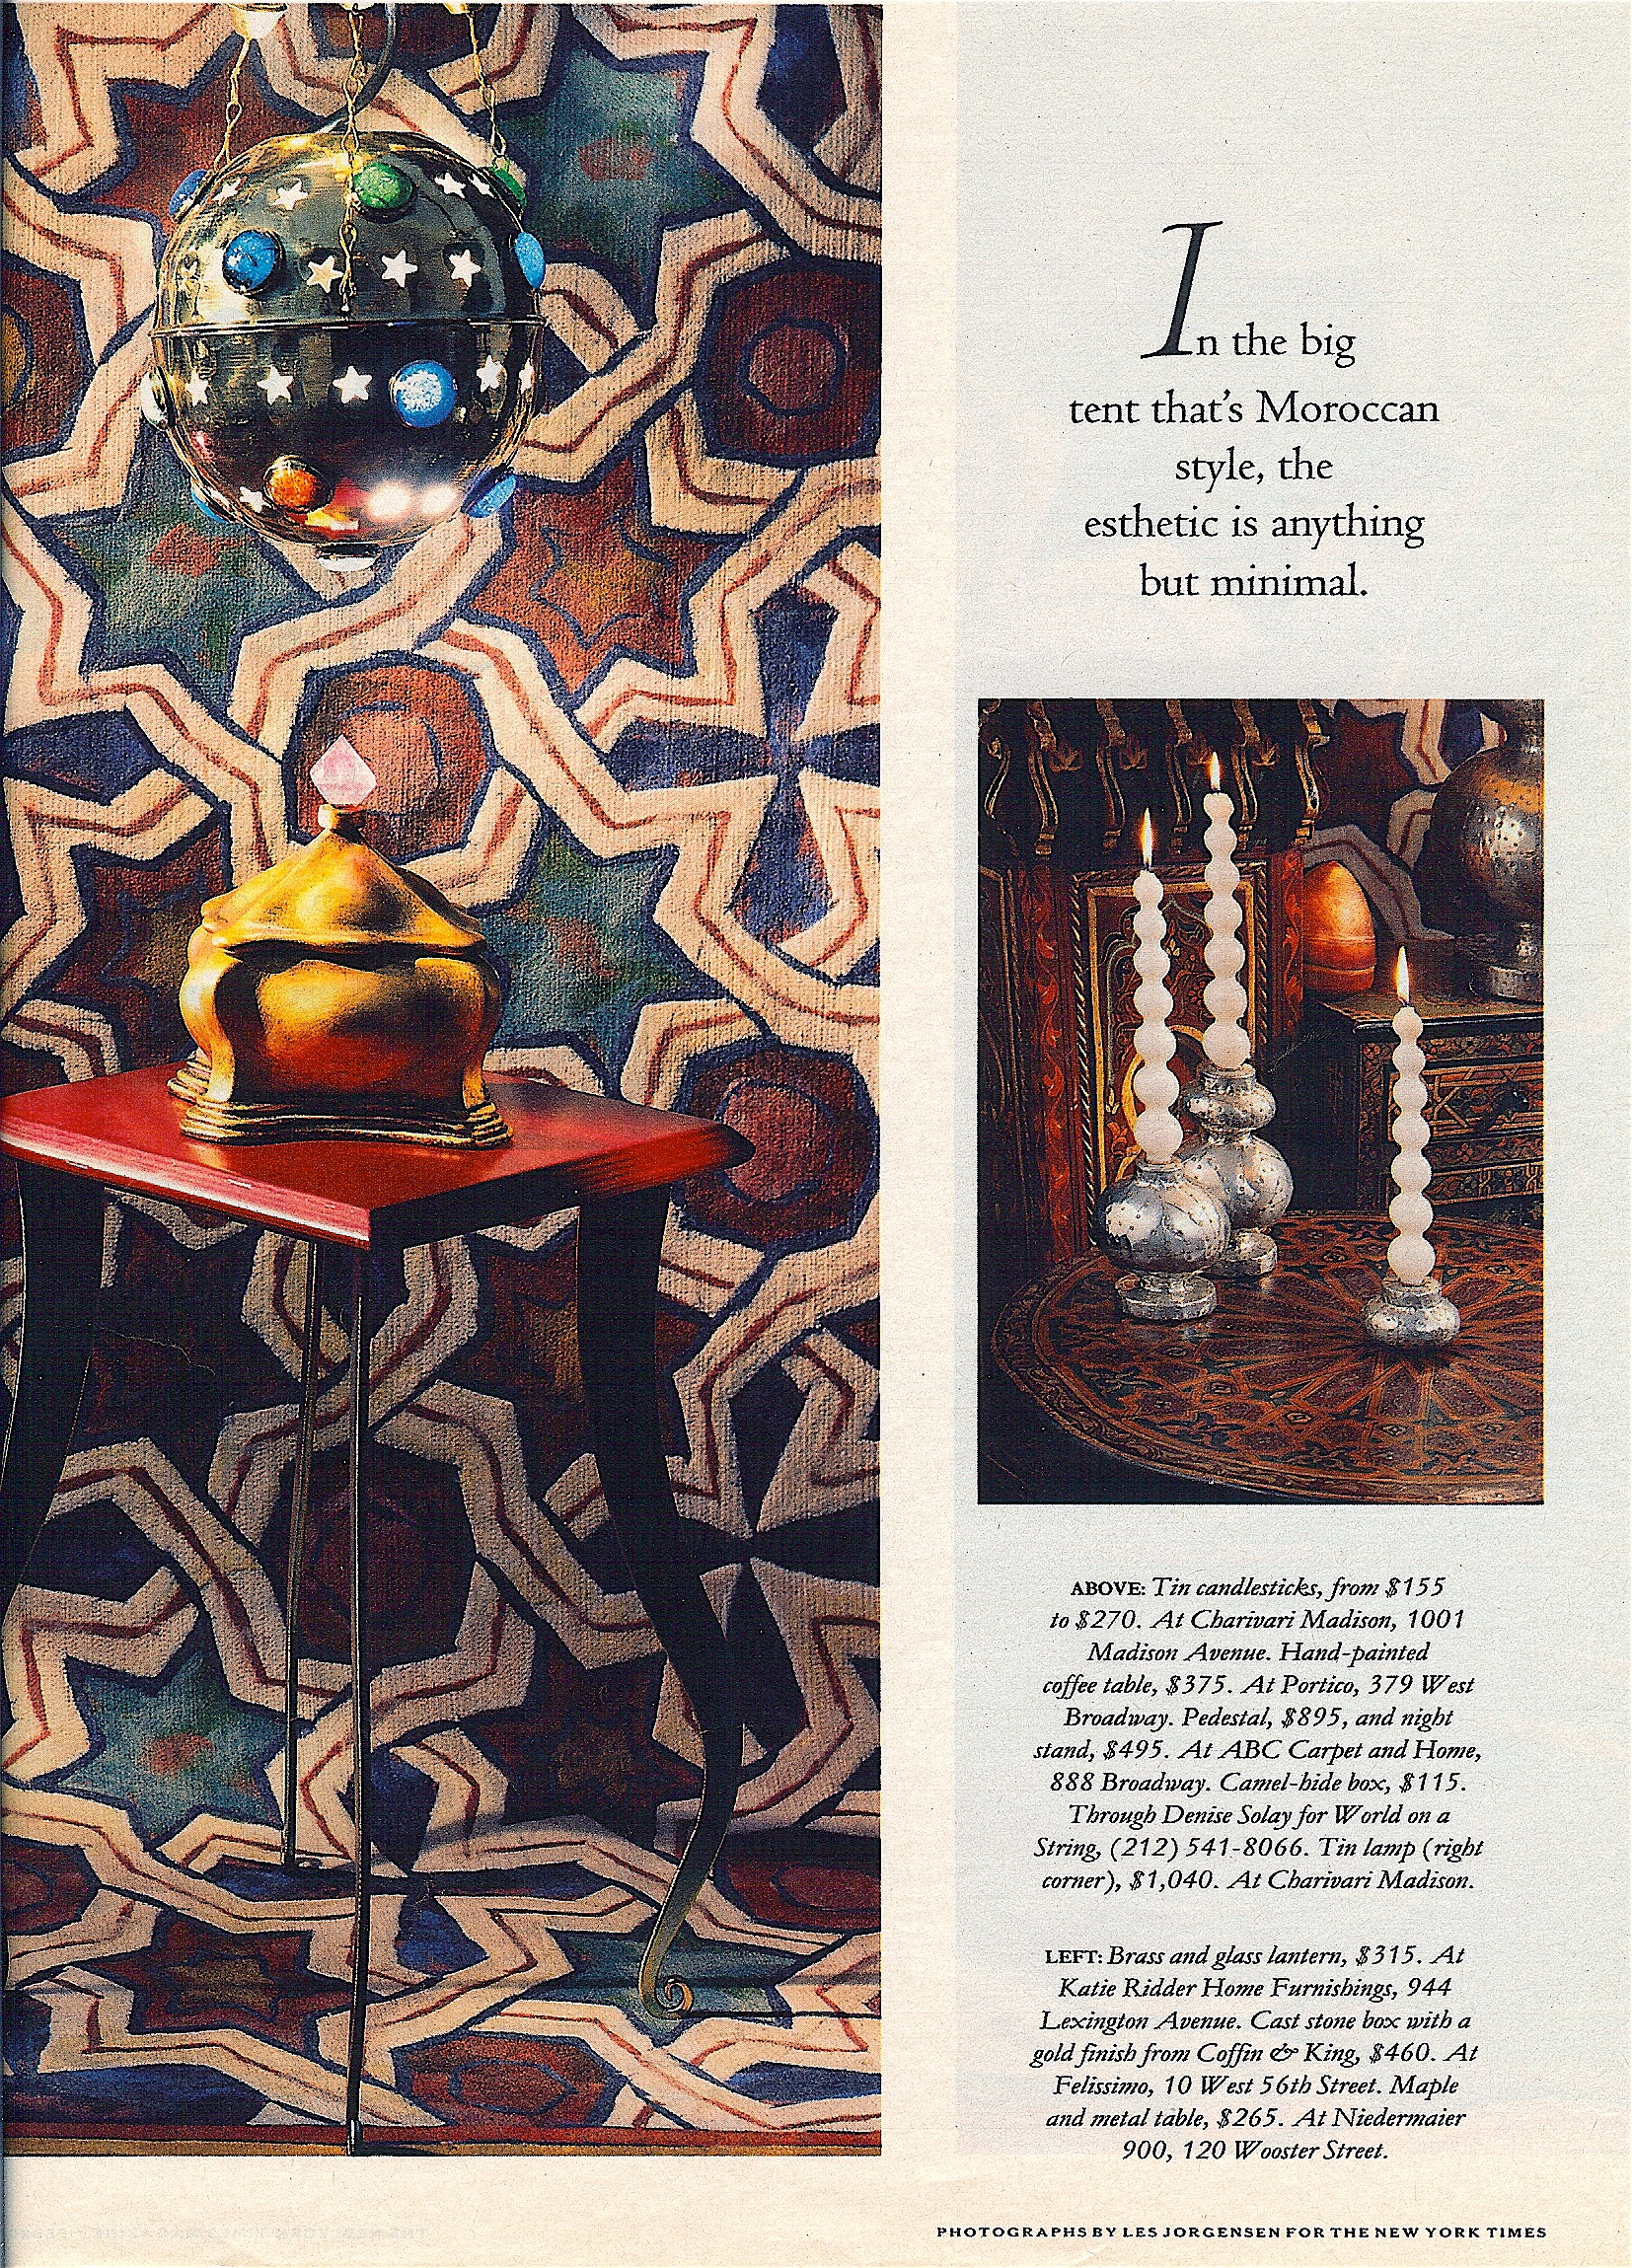 Coffin & King Press - Coffin & King Gilded Box featured in The New York Times Magazine